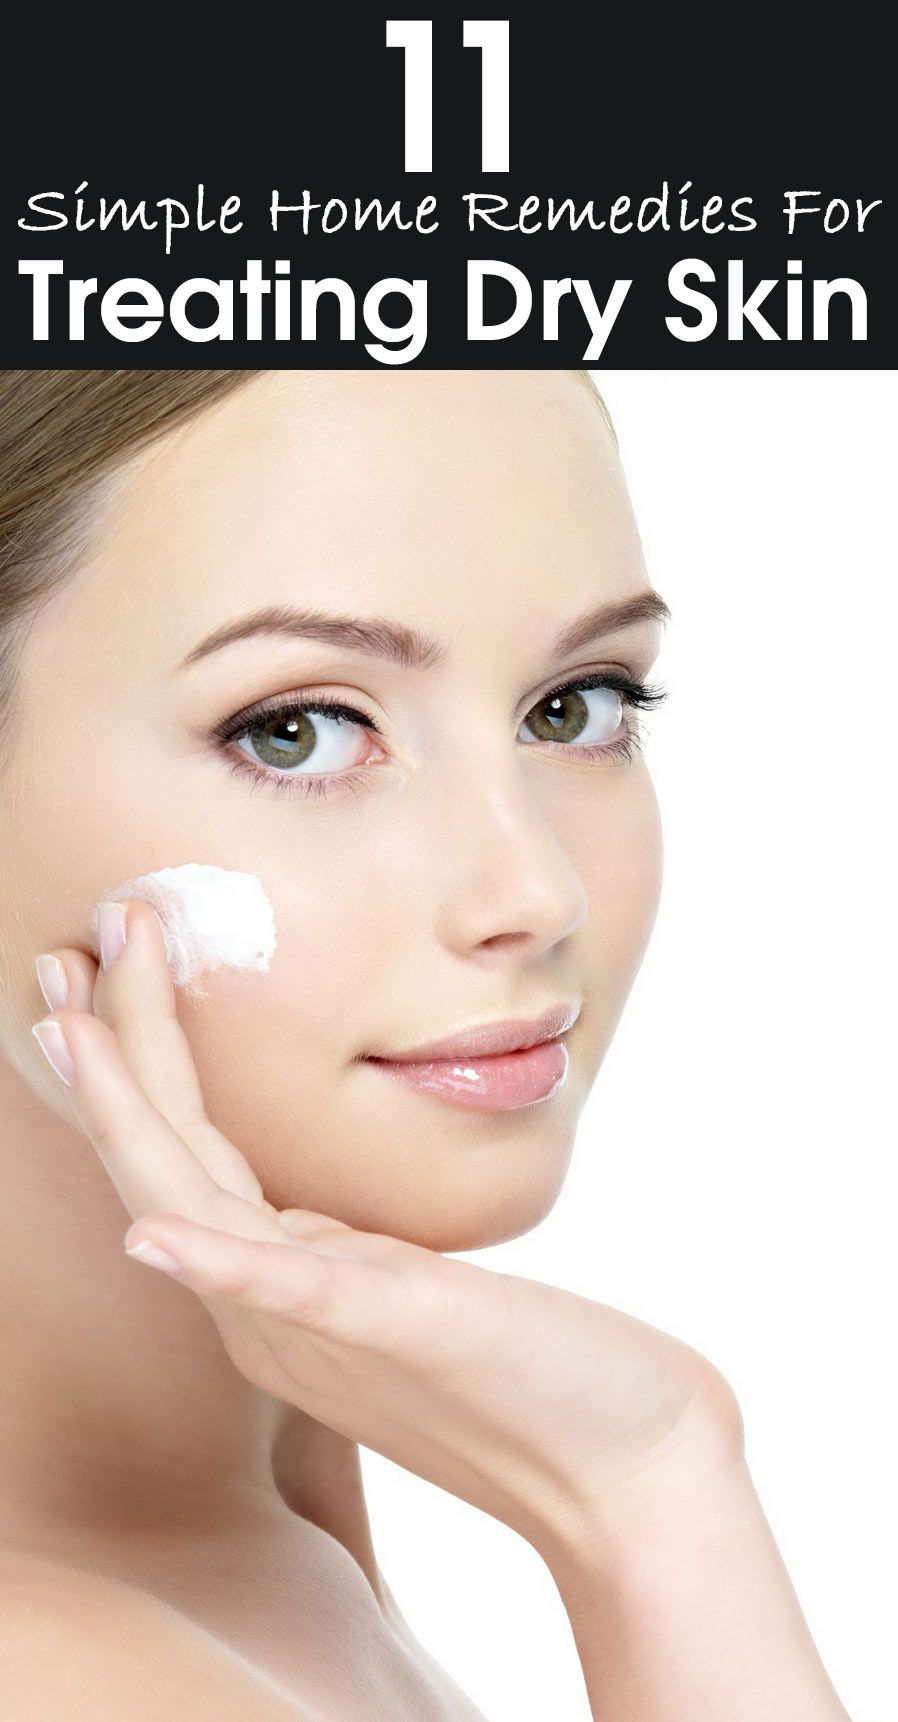 Top 38 Home Remedies For Dry Skin On Face recommendations